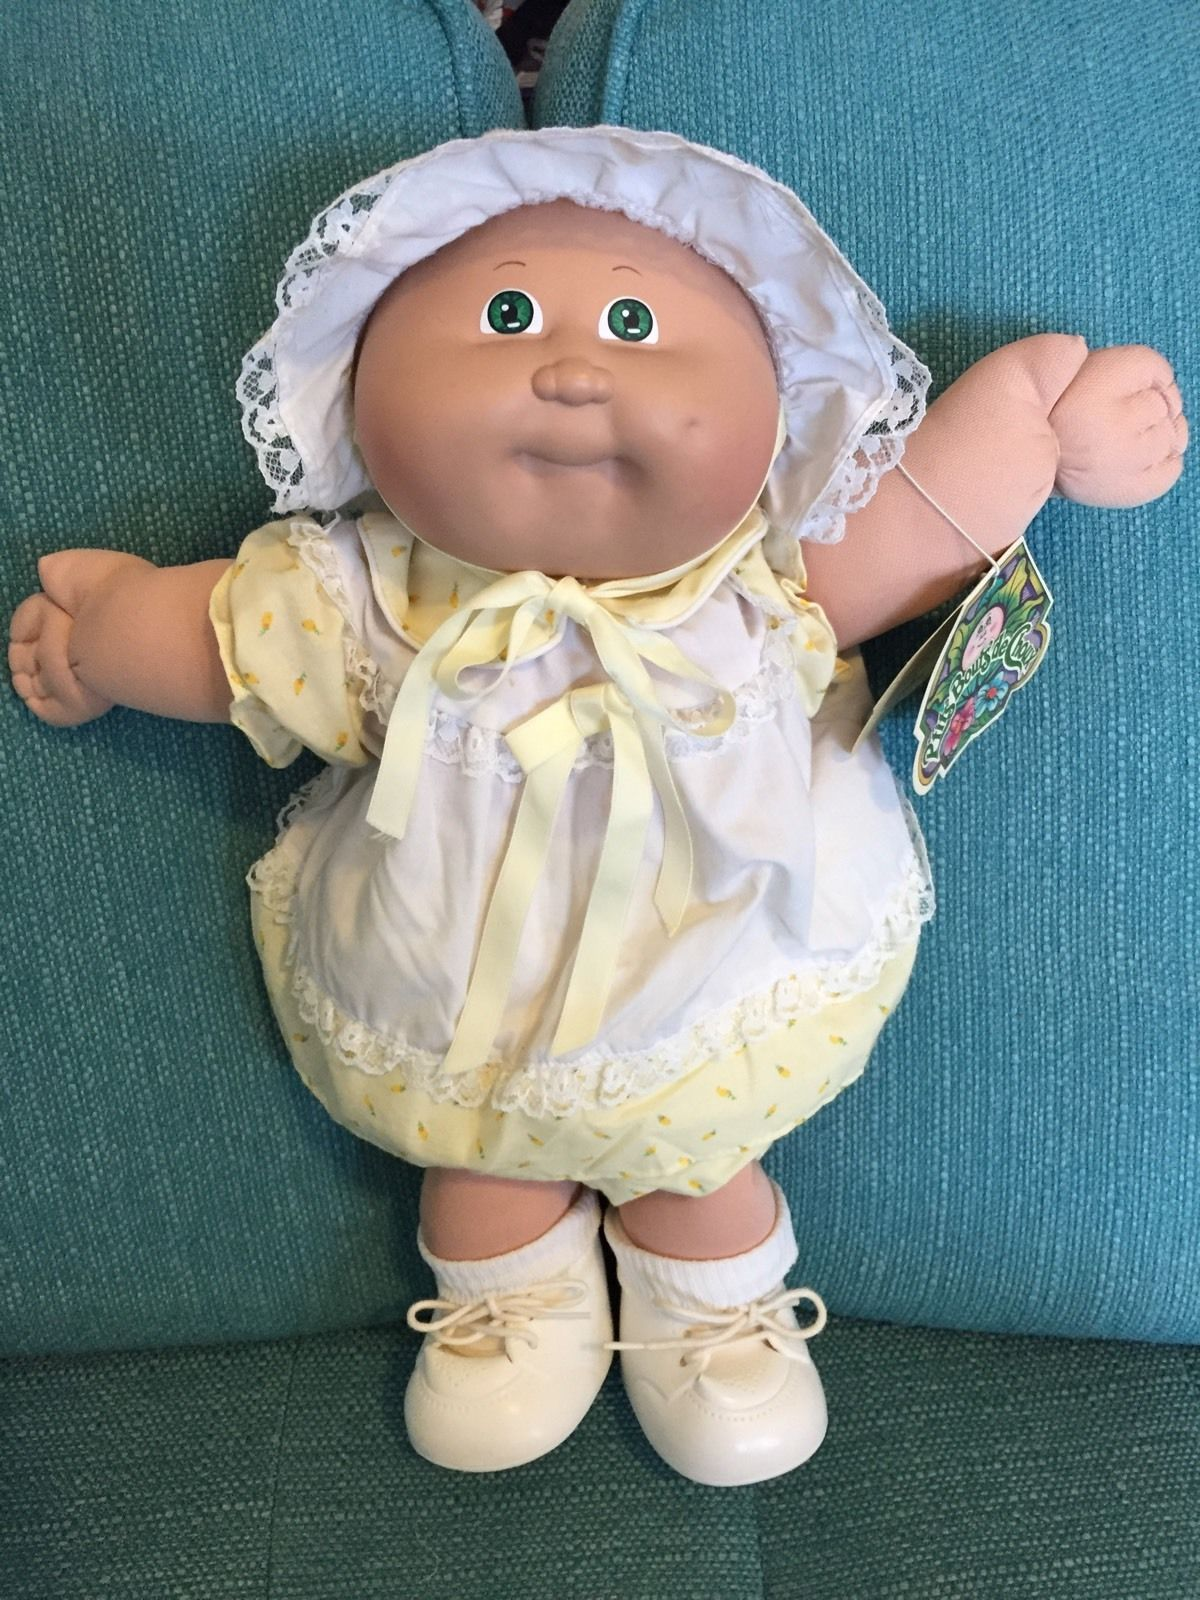 1984 Cabbage Patch Kid Merry Noelle Ebay Vintage Cabbage Patch Dolls Cabbage Patch Kids Clothes Cabbage Patch Babies